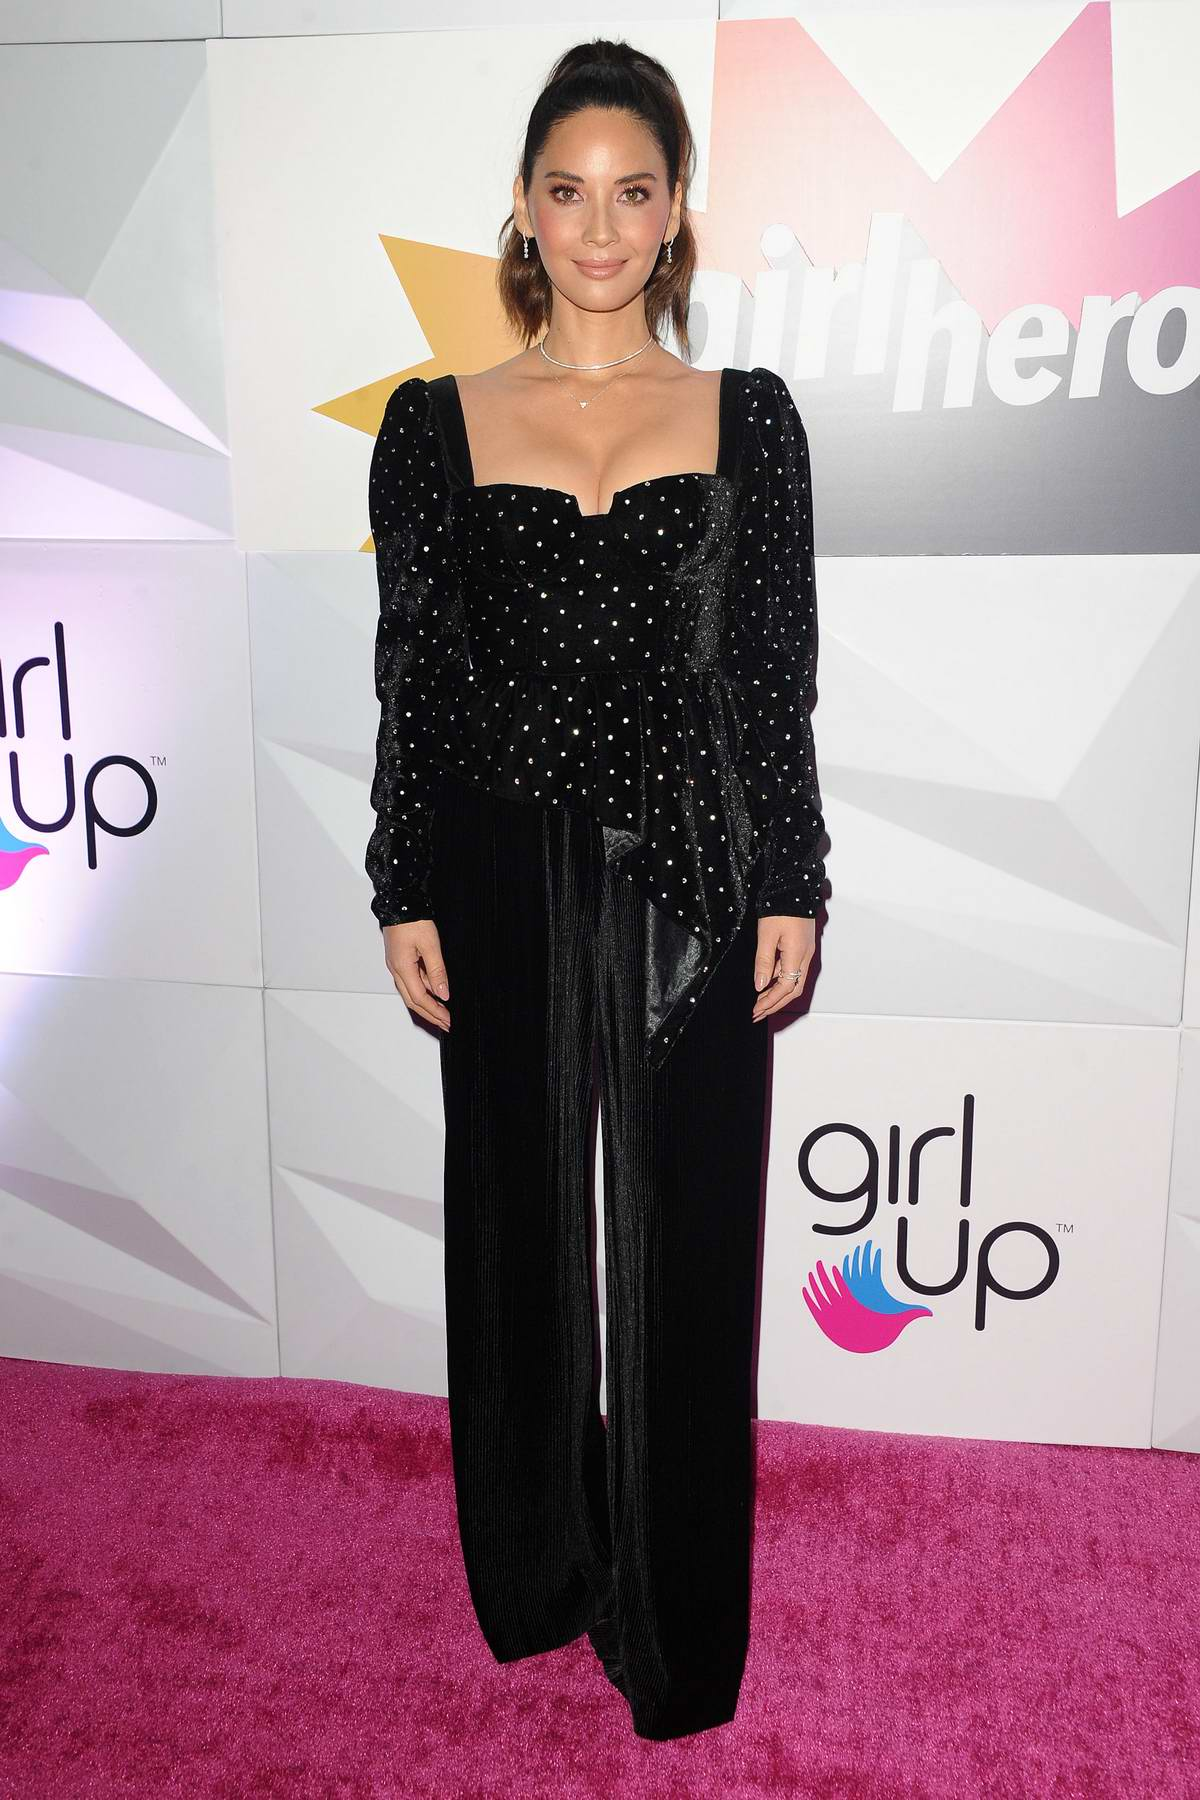 Olivia Munn attends Girl Up's Inaugural #GirlHero Awards Luncheon at SLS Hotel in Beverly Hills, Los Angeles